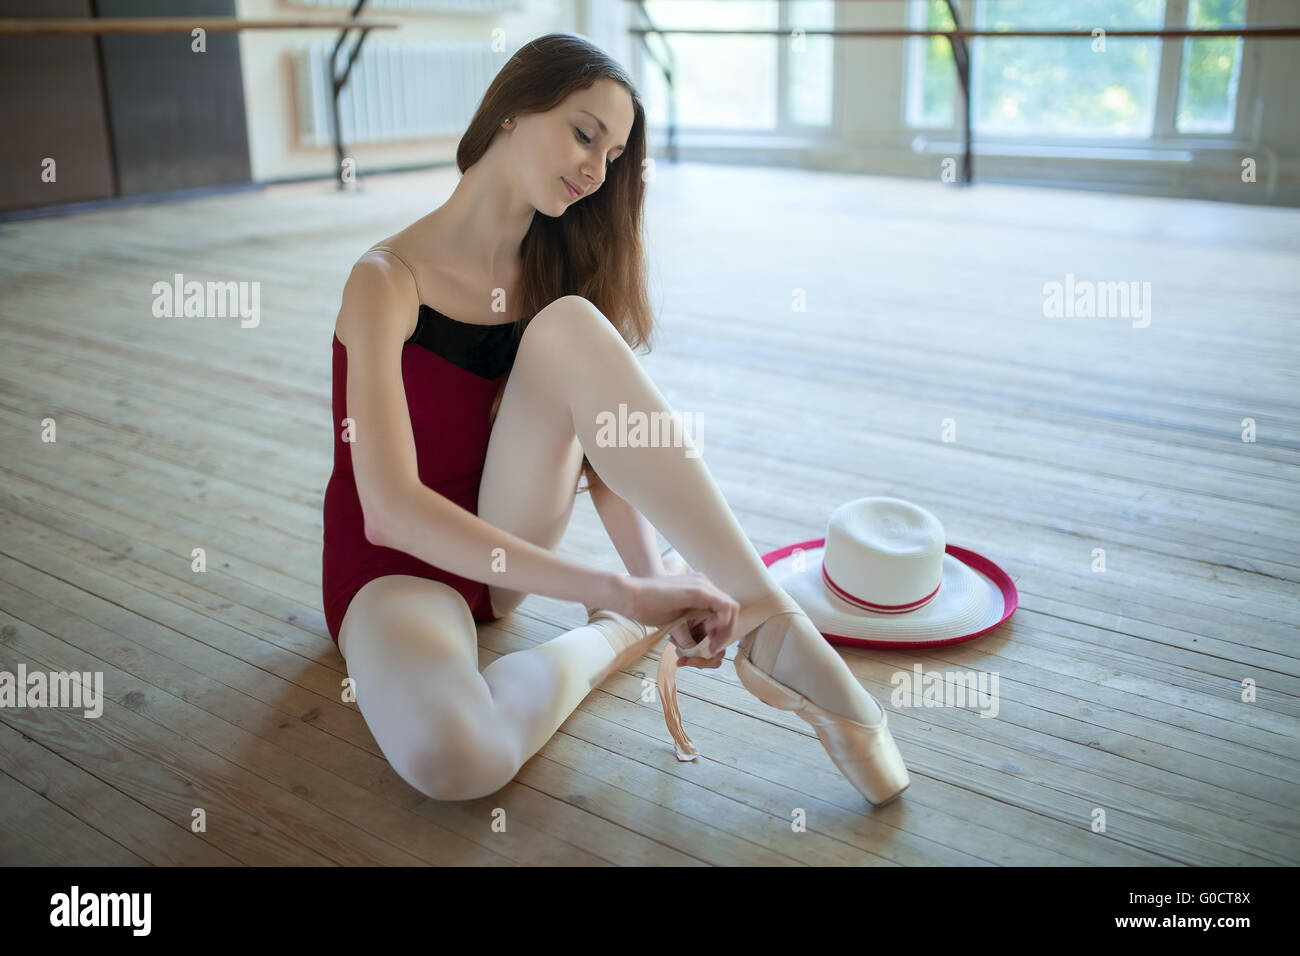 Young ballerina sitting on the floor dance classroom gently tyin - Stock Image